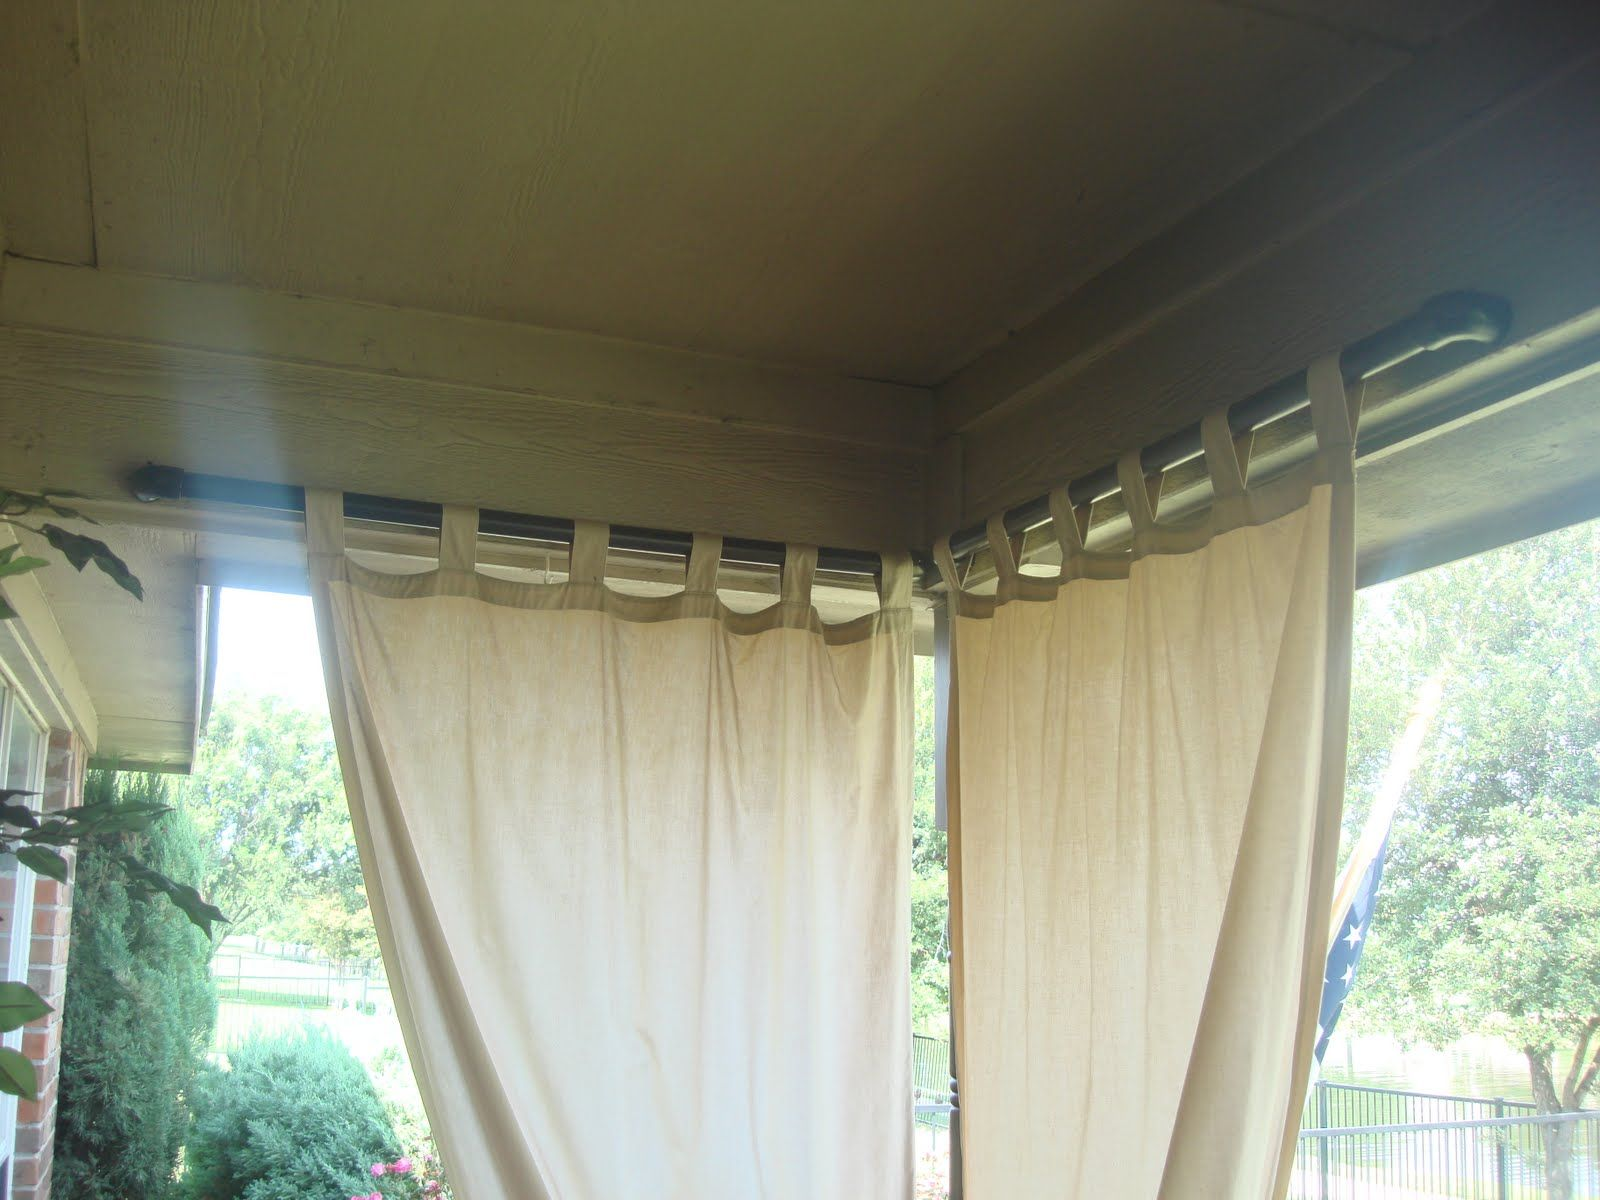 Outdoor curtain rod ideas - Paint Pvc Pipe Black For Outdoor Curtain Rod A Slot Was Cut Into The Top